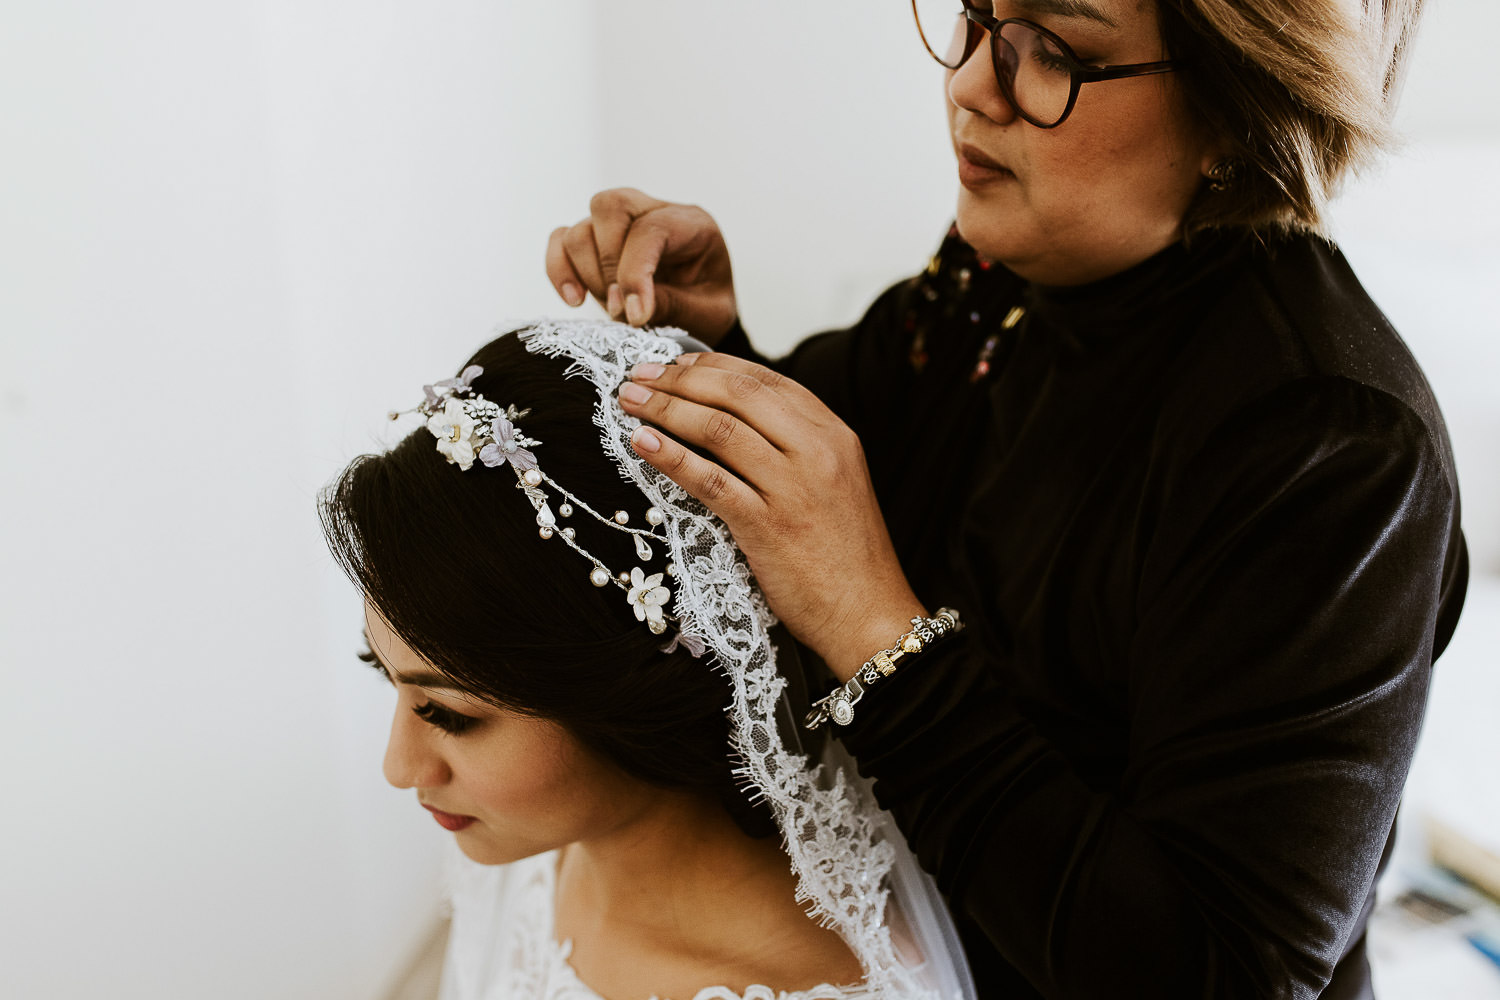 Fatimah Mohsin fitting veil on bride